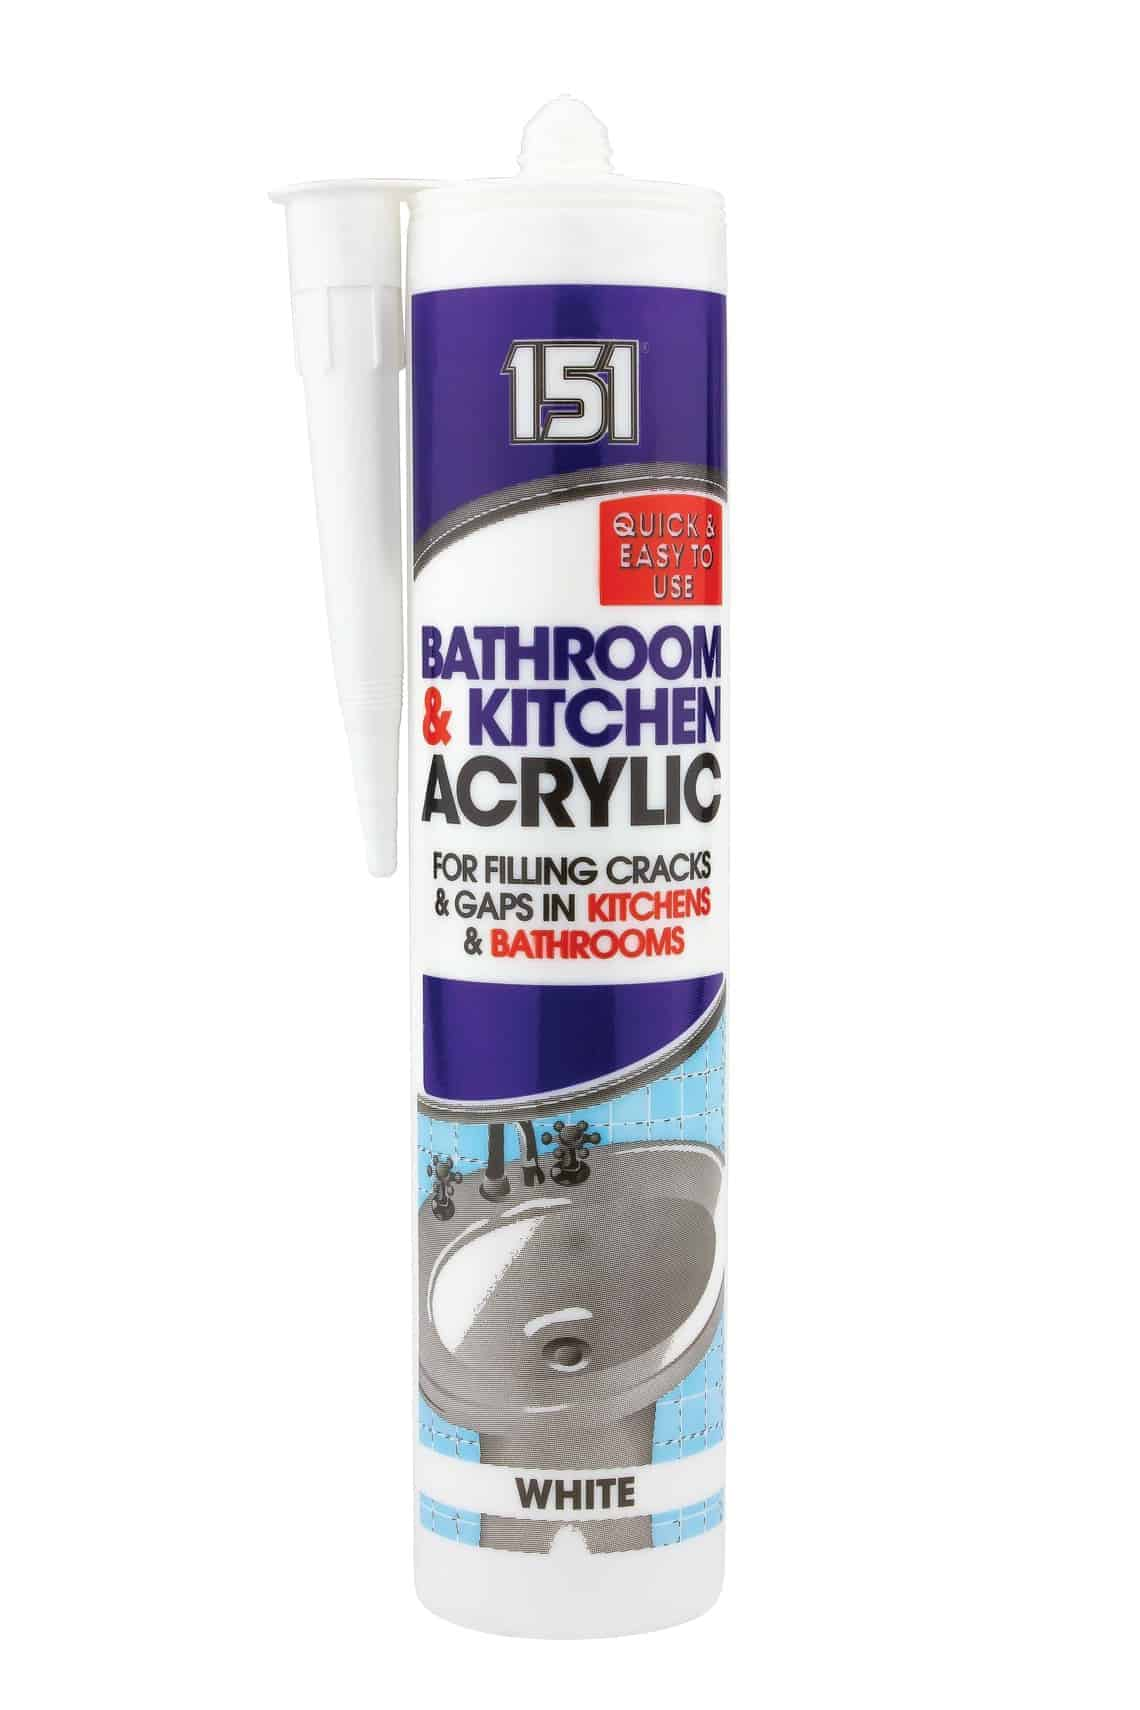 151 Bathroom & Kitchen Acrylic WHITE for Filling Cracks and Gaps in Kitchens and Bathrooms